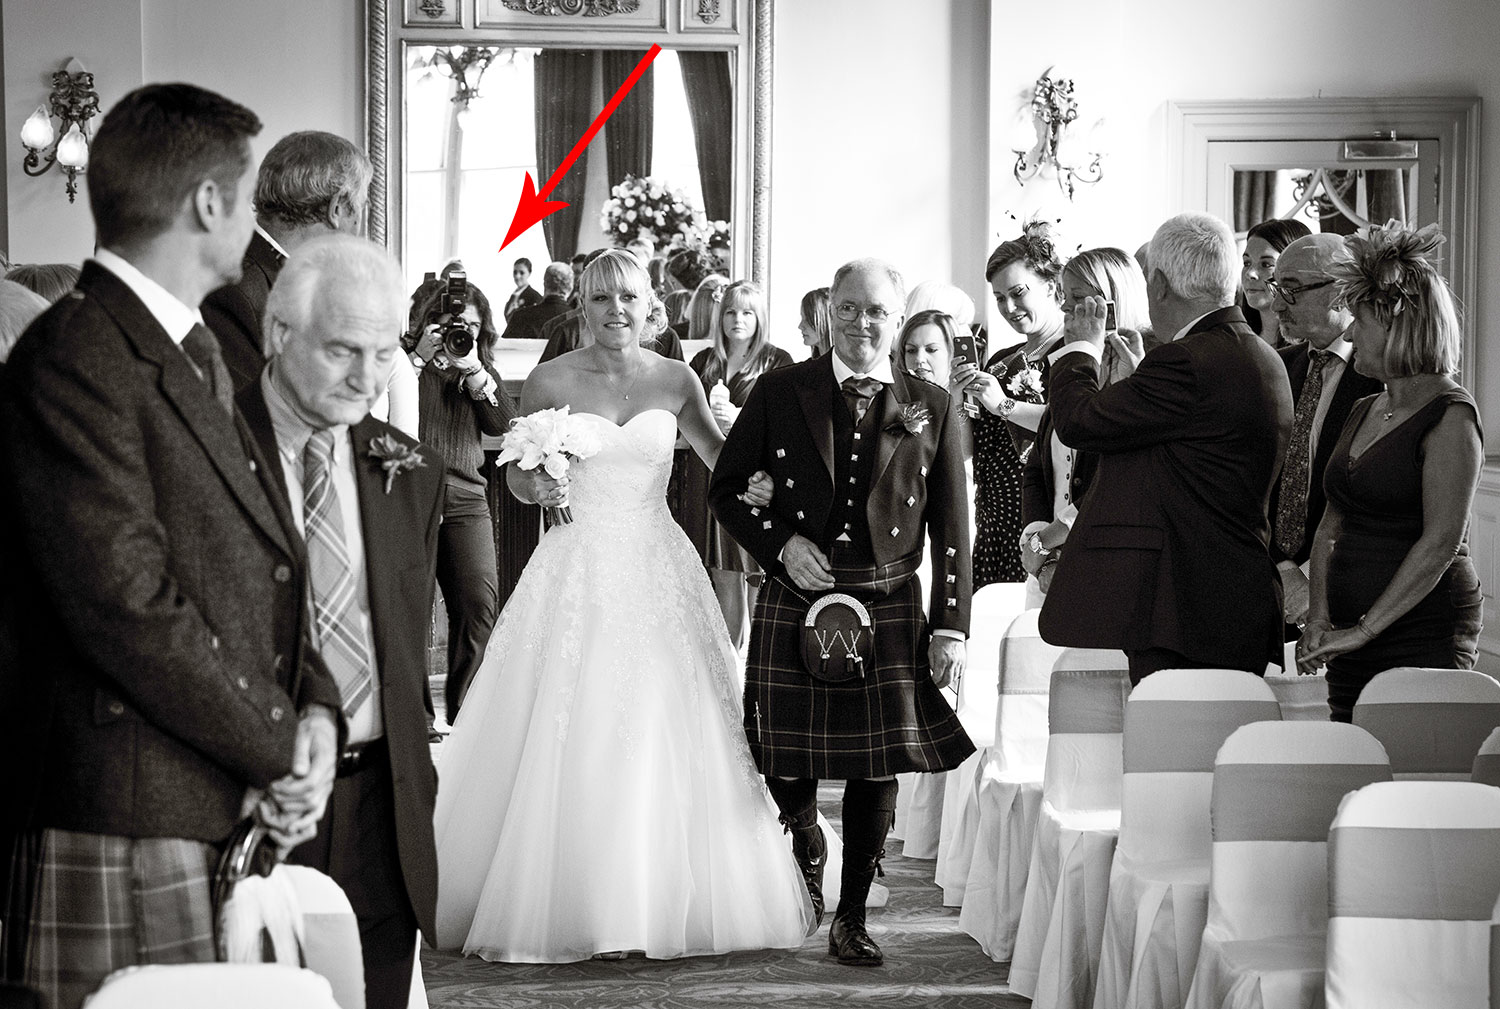 This is me taking photographs from behind the bride walking down the aisle. I also managed to take photographs at the front of the ceremony, as there was lots of room in the wedding ceremony room in the Balmoral Hotel in Edinburgh, best spot for the photographer during the wedding ceremony